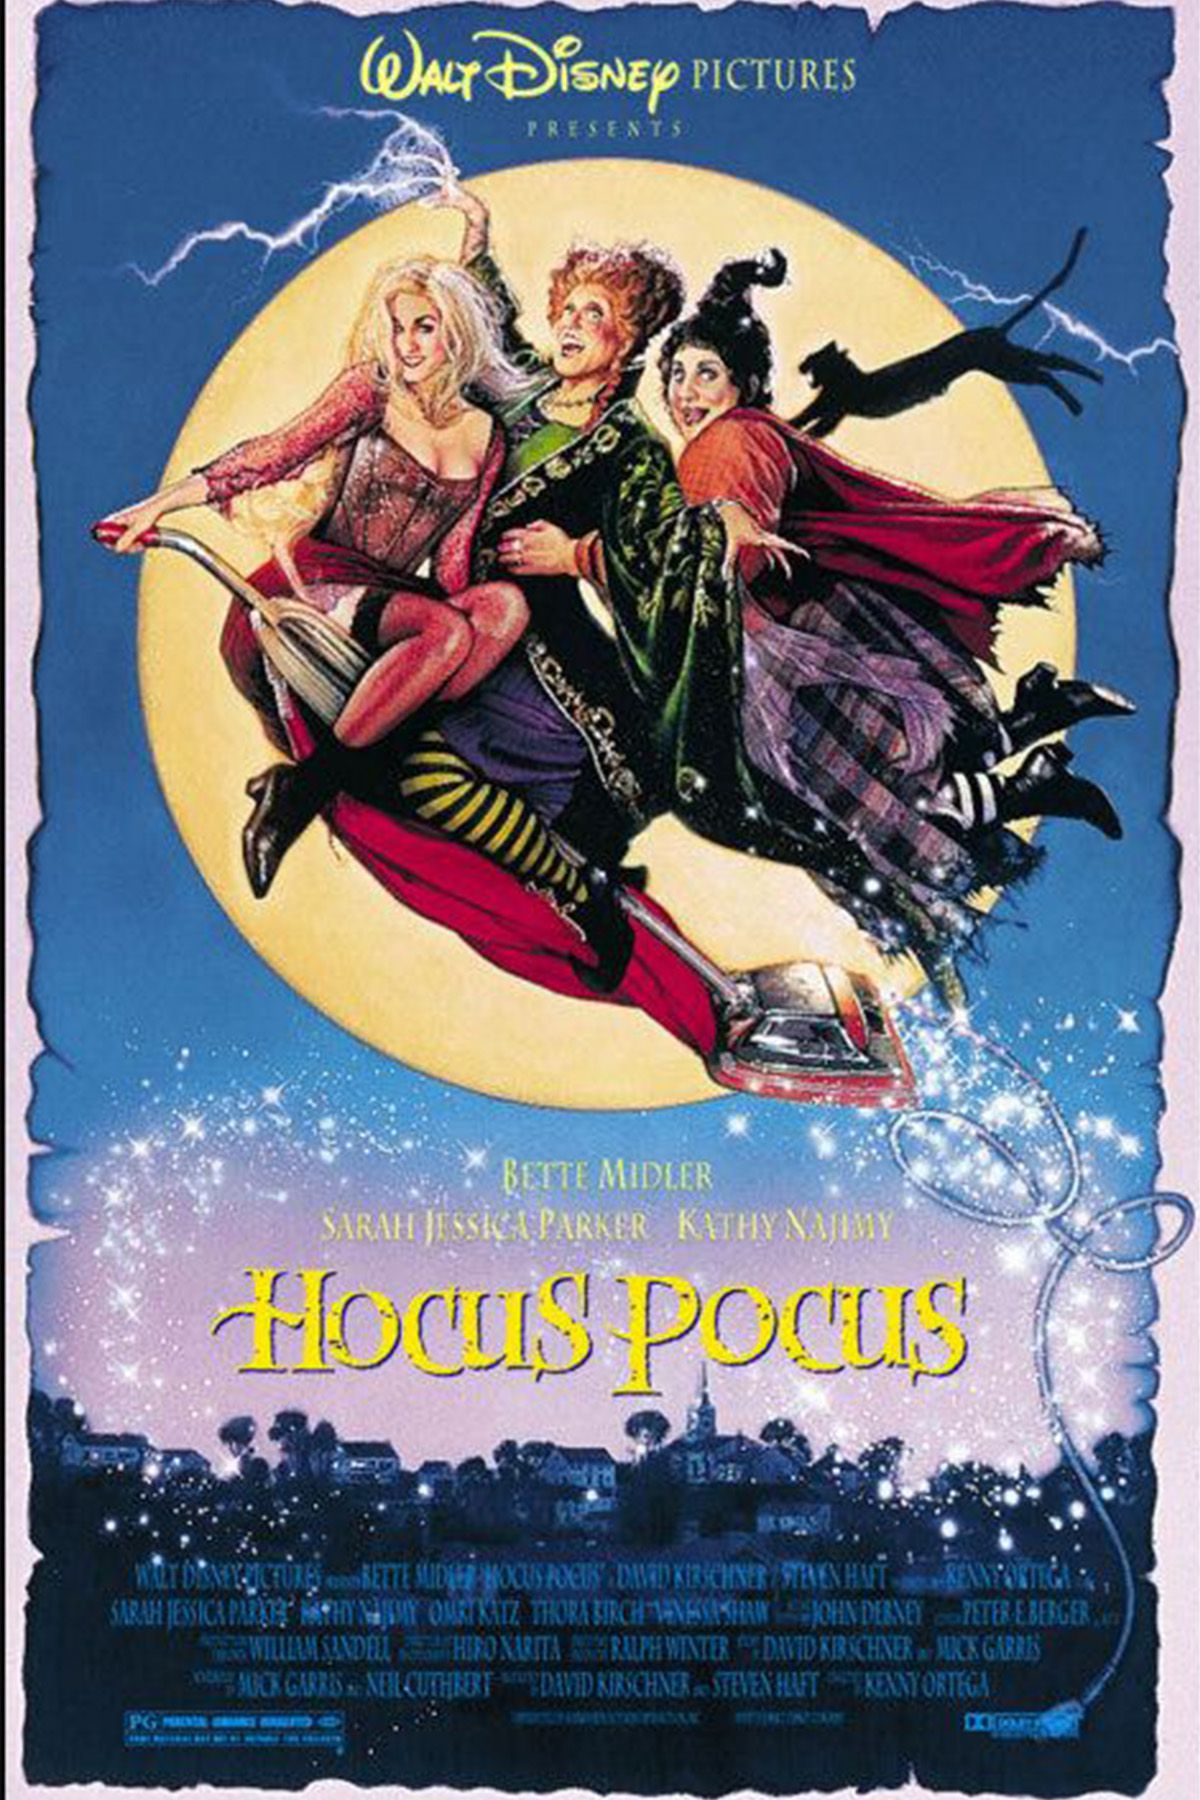 Nightmare On Main Street - Hocus Pocus @ Palace Theatre